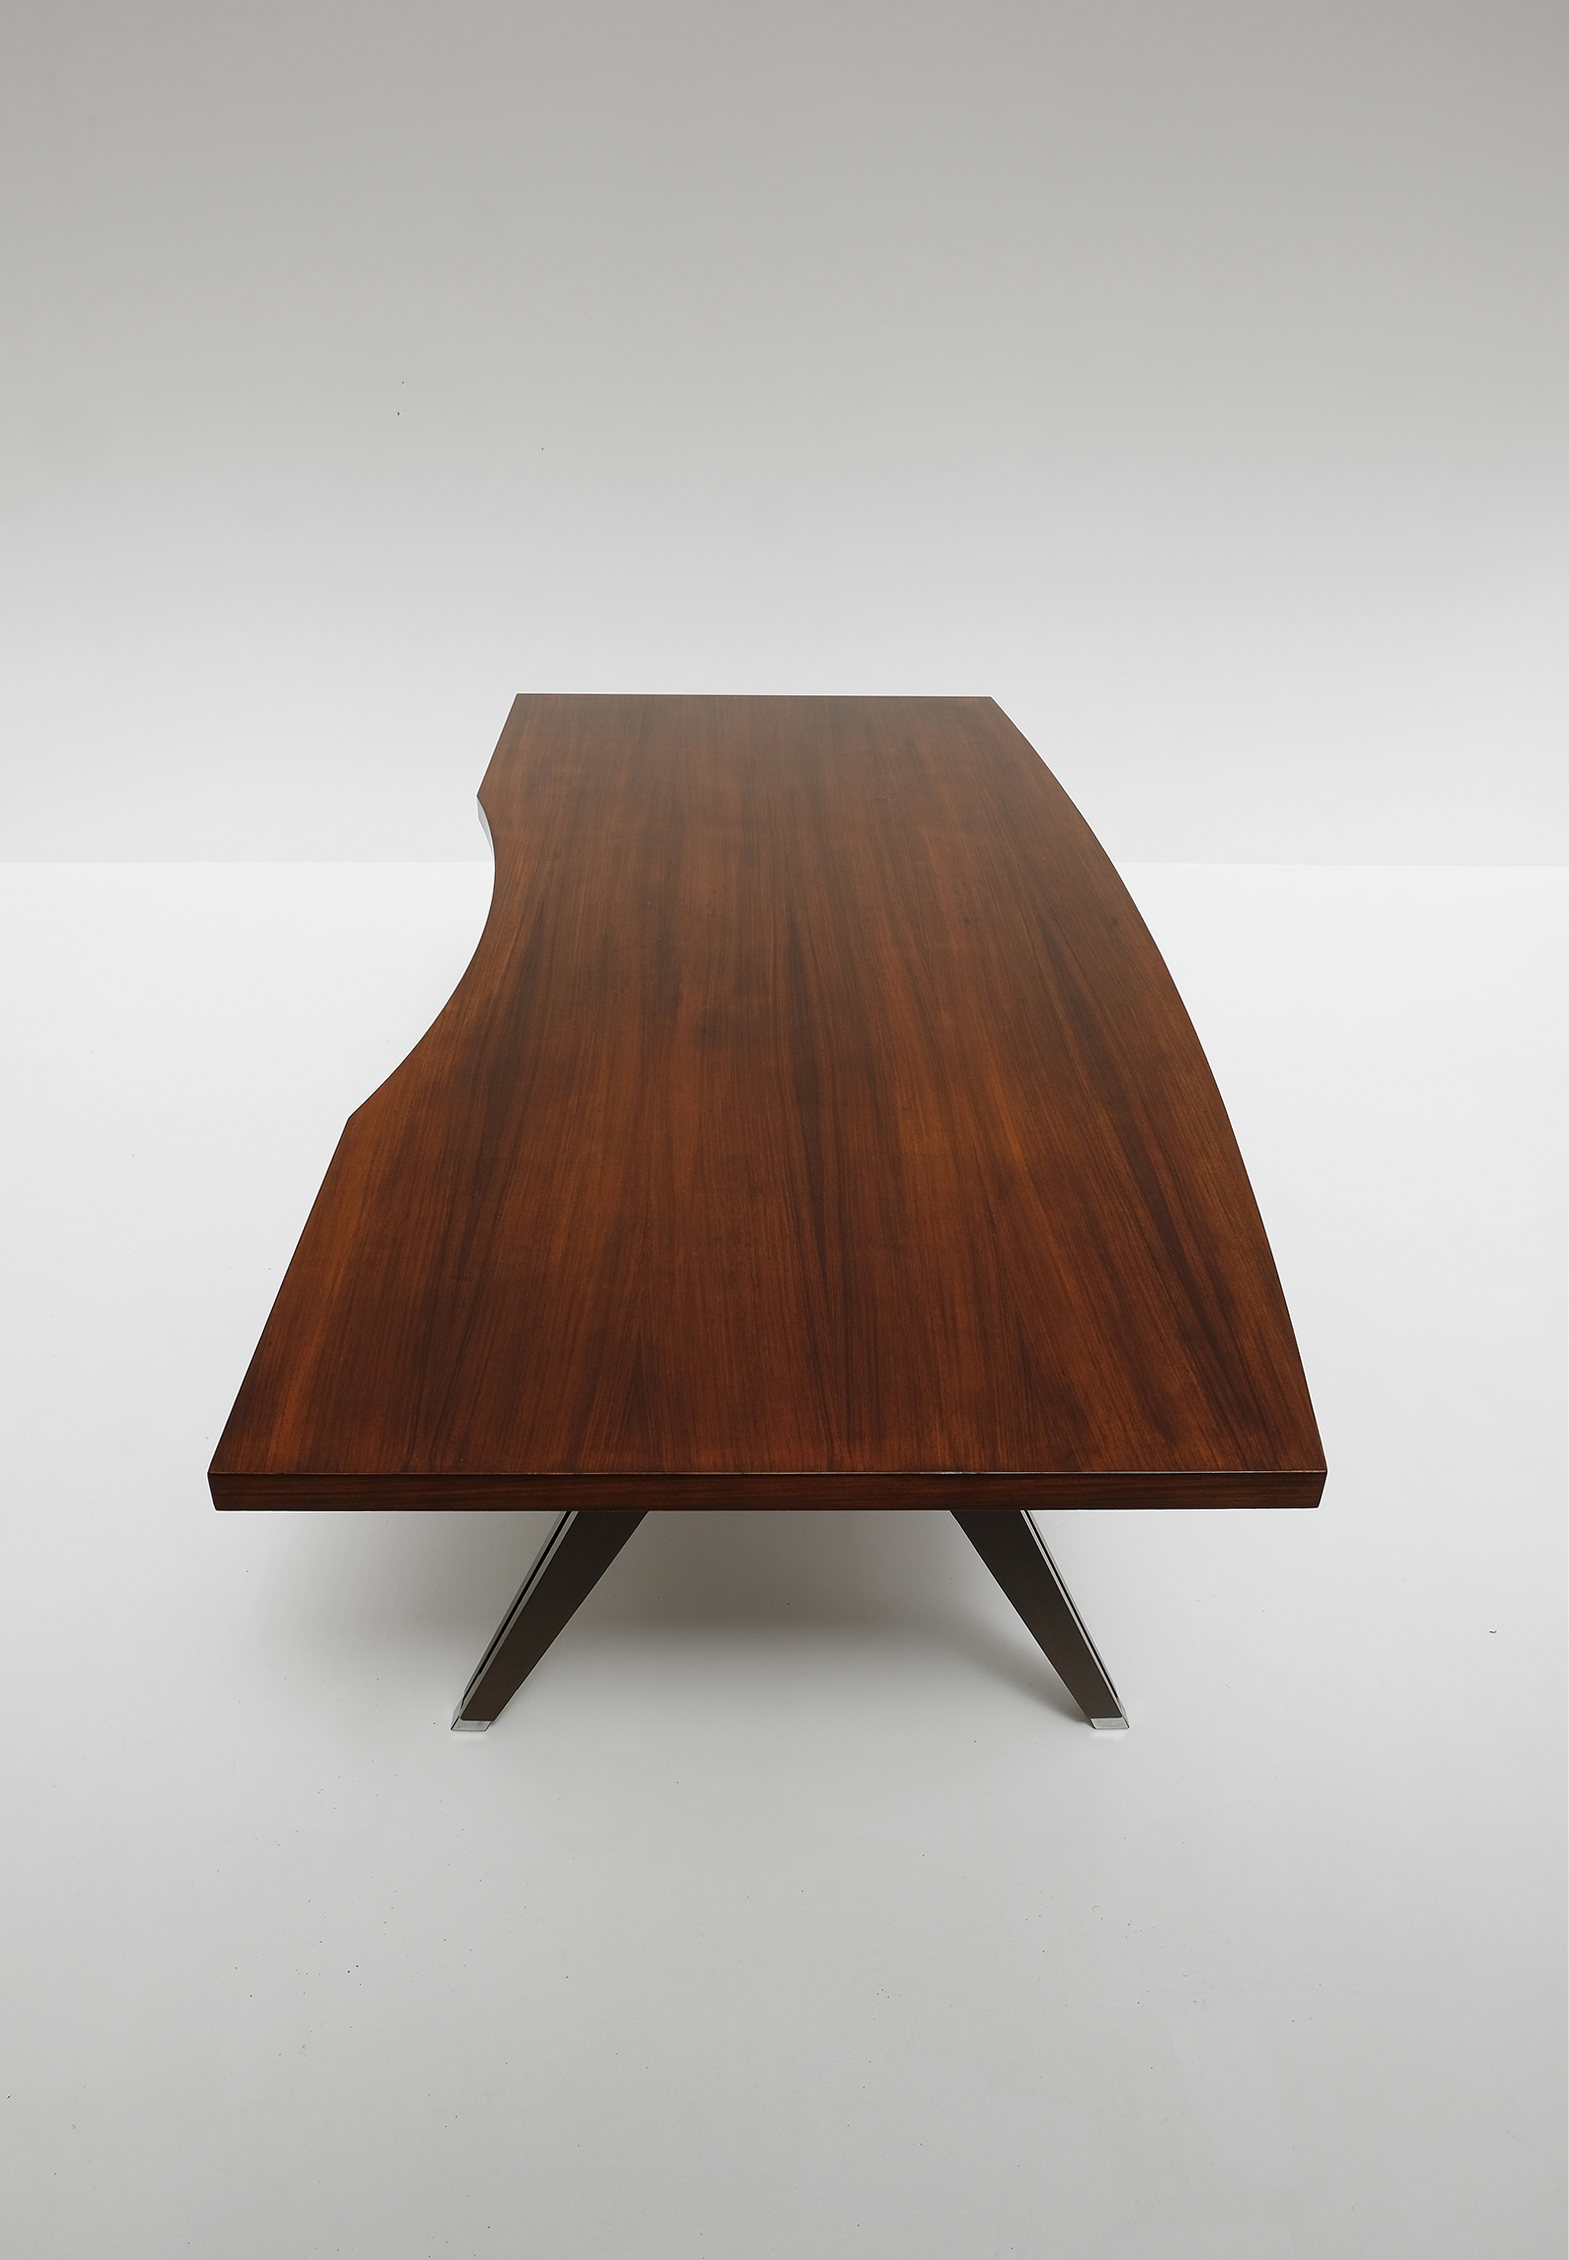 Executive Desk by Ico Parisi for MIM 1958image 12